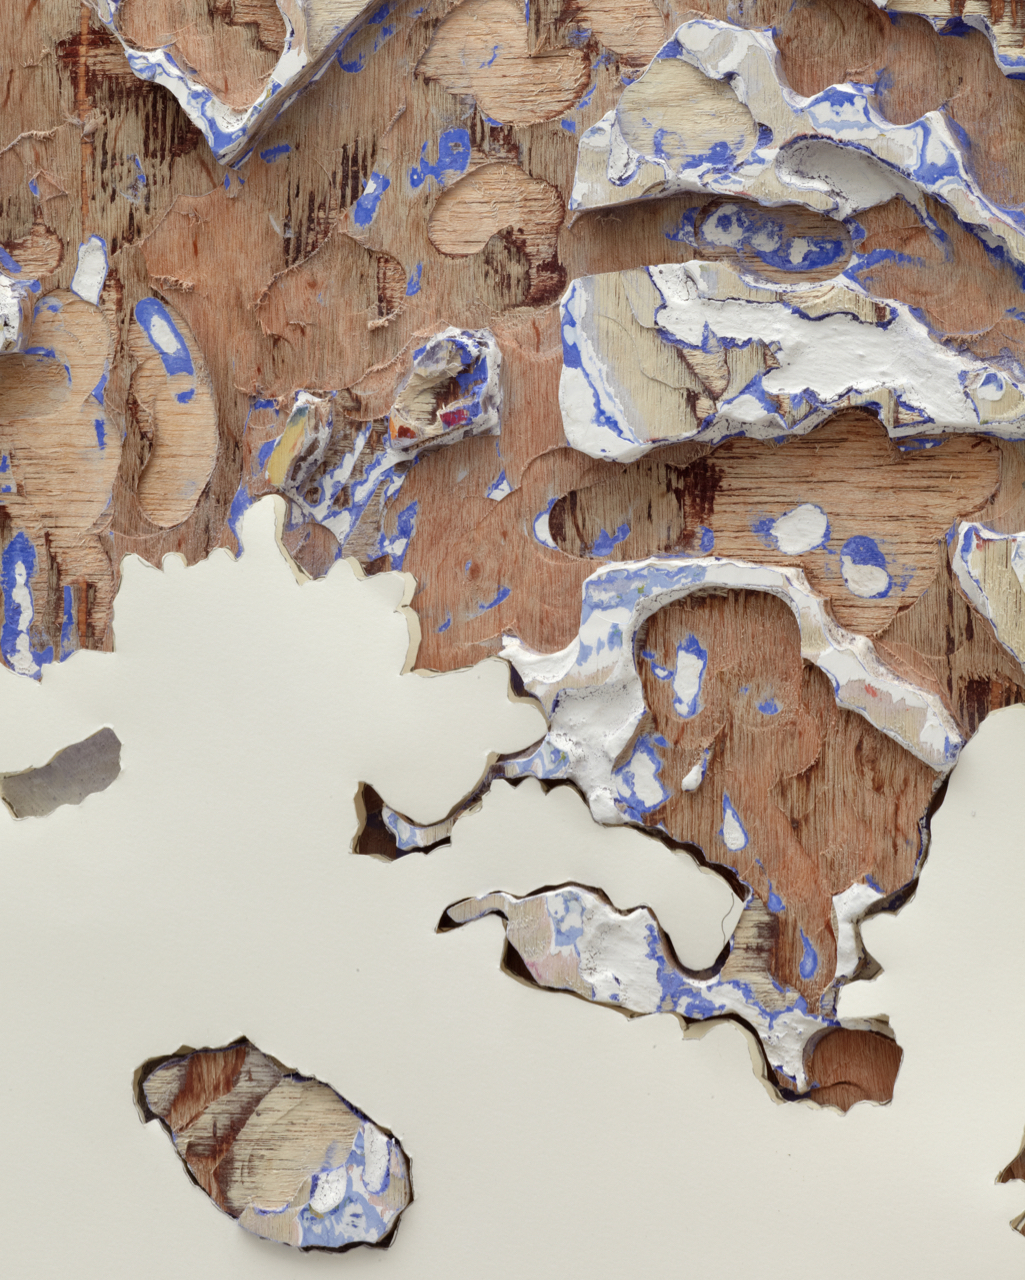 Jigsaw Painting No. 1 2012 (detail)